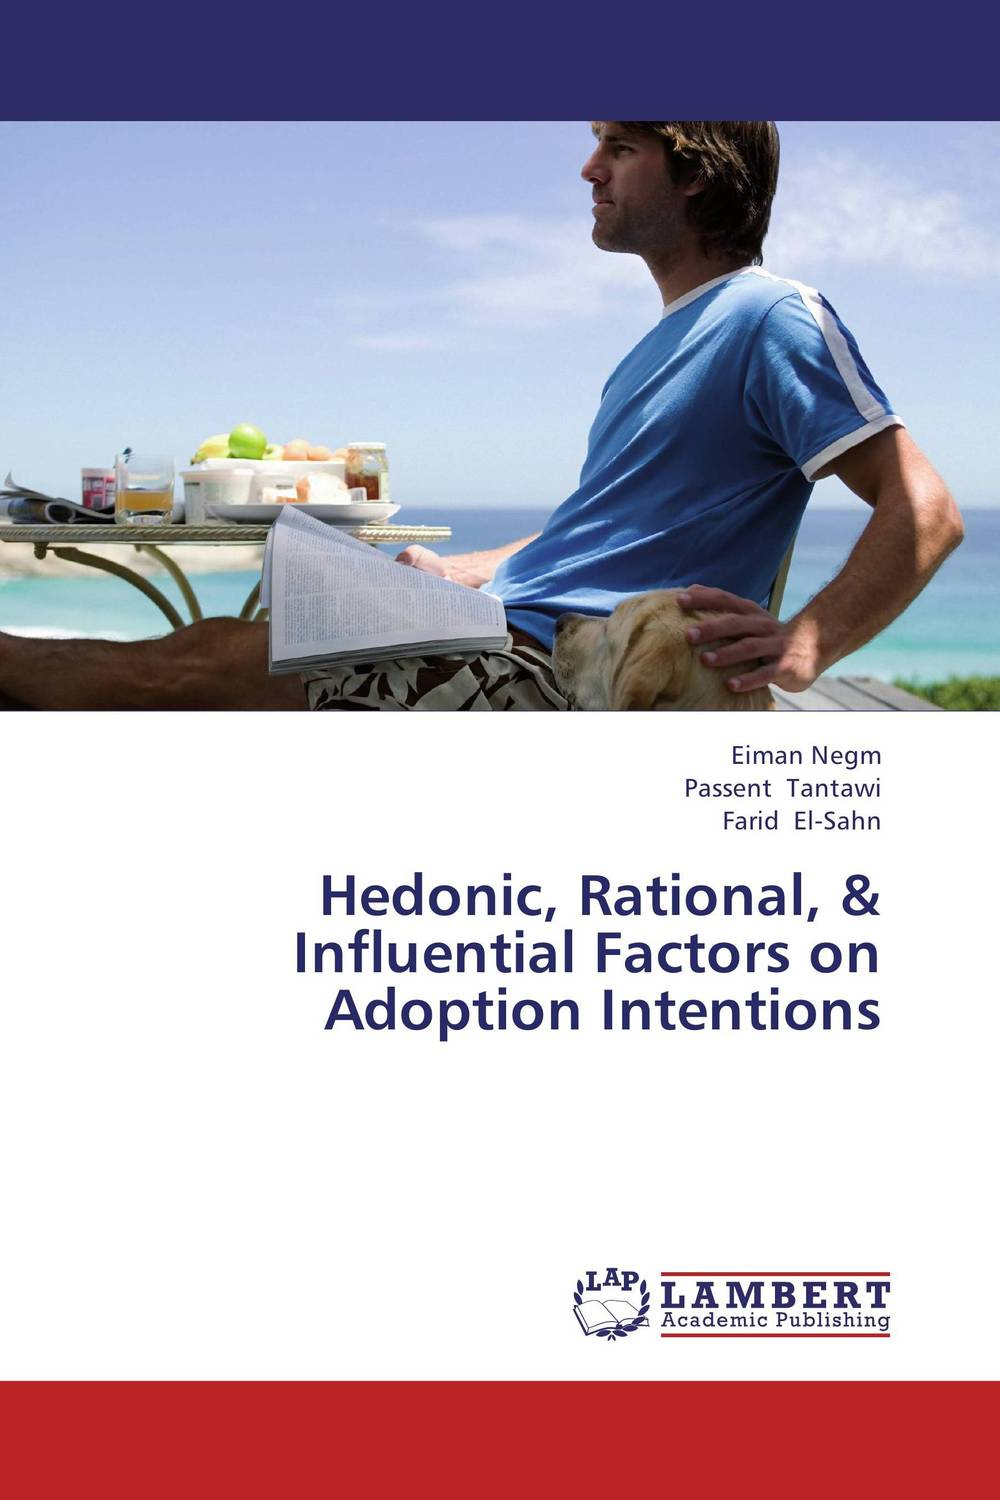 цены Hedonic, Rational, & Influential Factors on Adoption Intentions